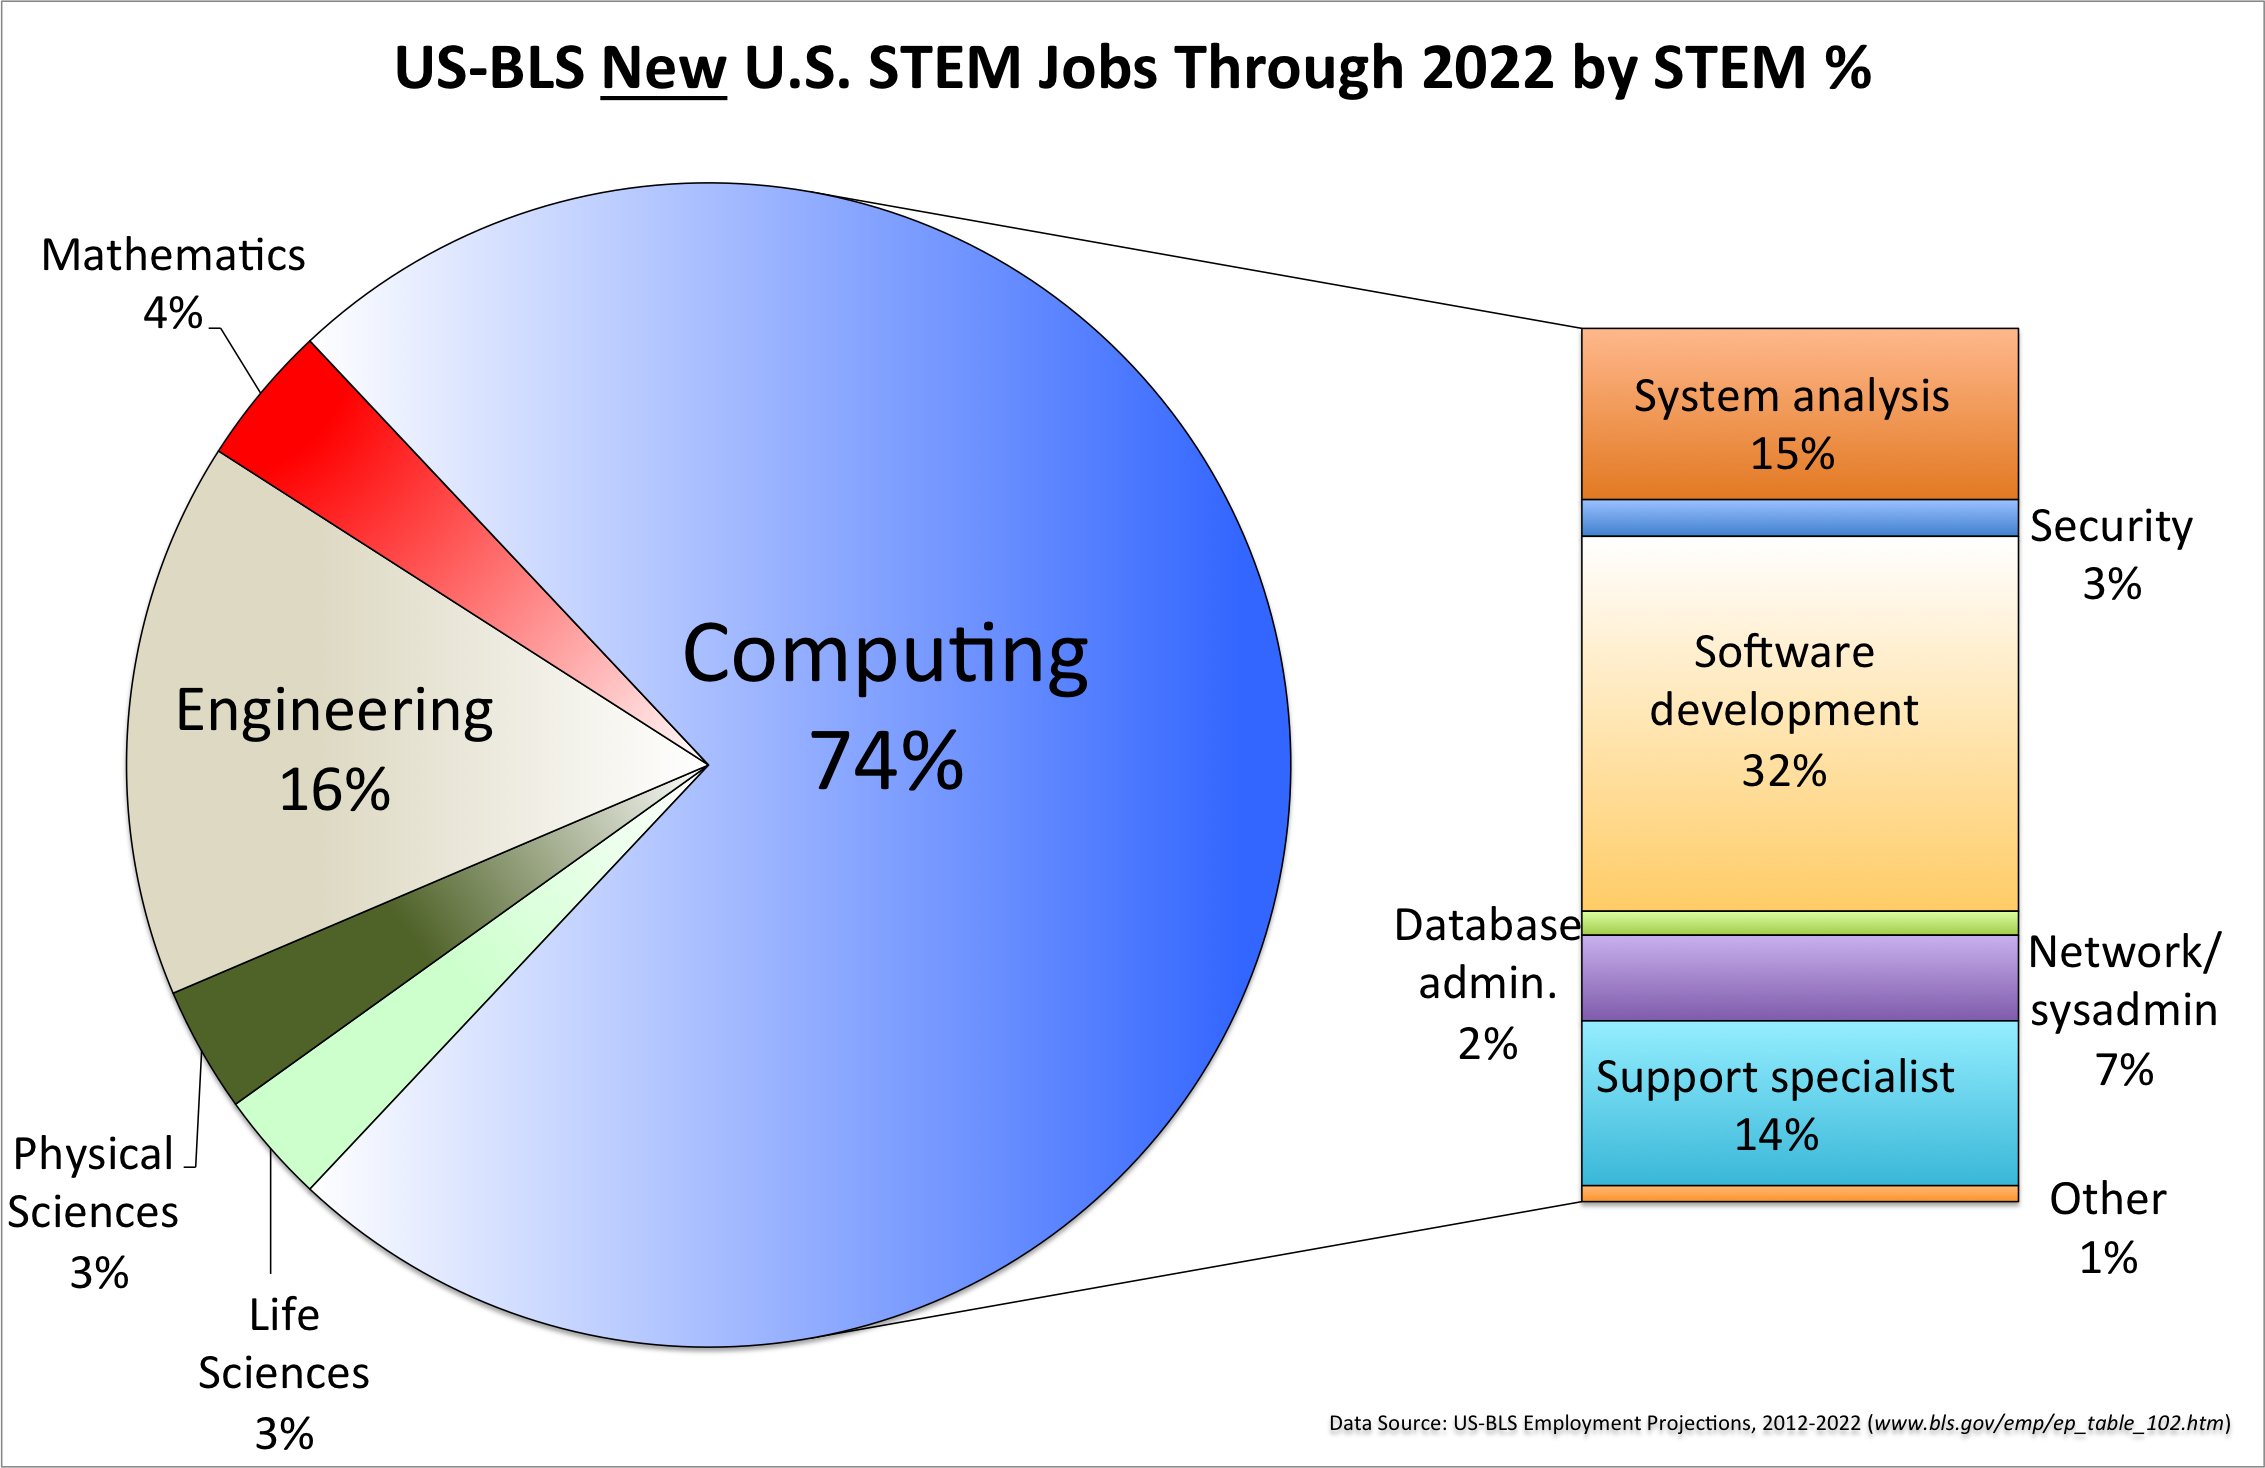 The U.S. Bureau of Labor predicts that between now and 2022,               74% of the new STEM jobs will be computing jobs